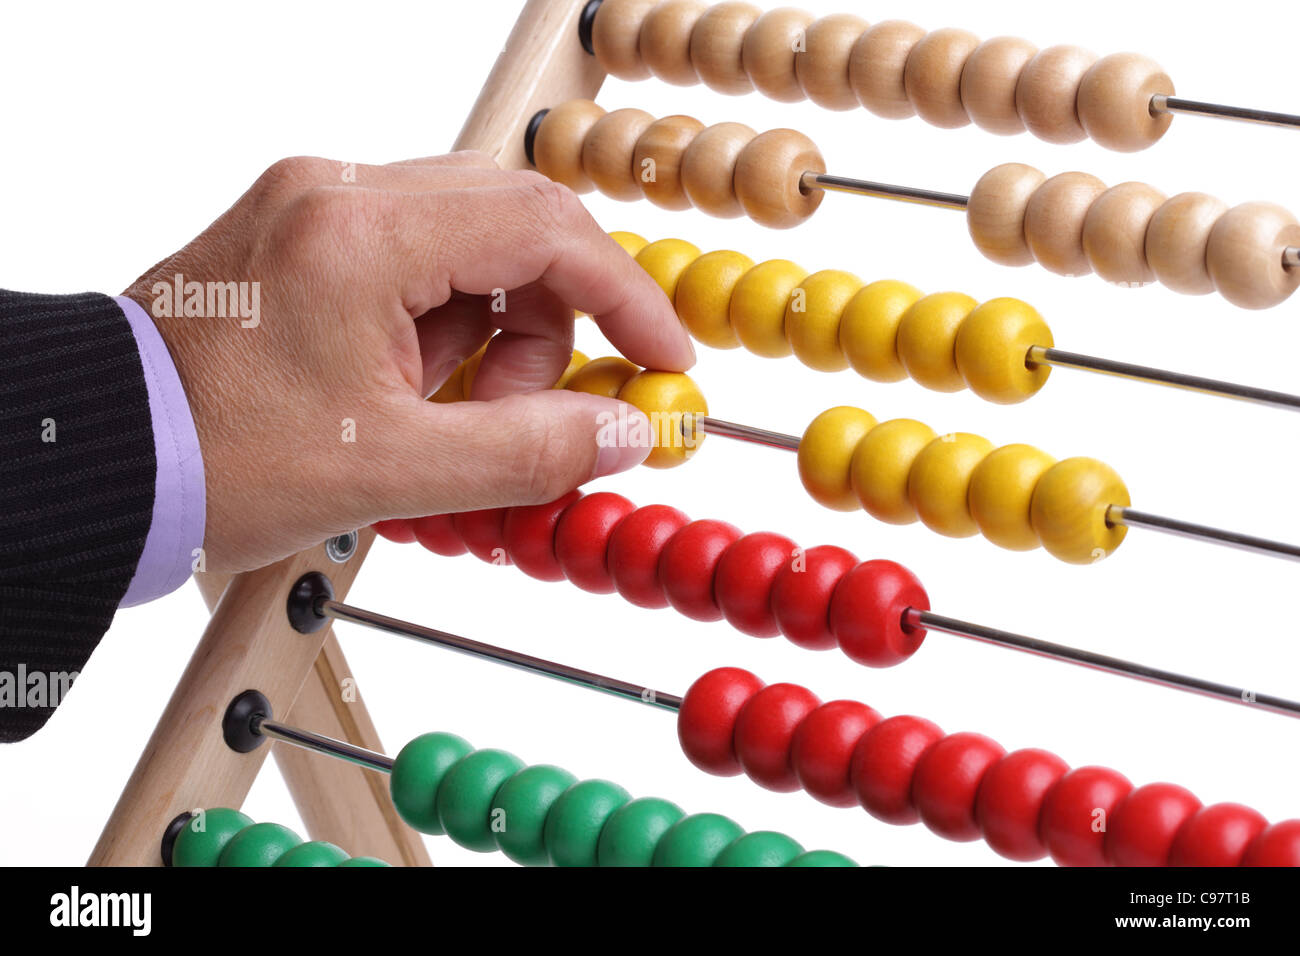 Calculating with an abacus - Stock Image